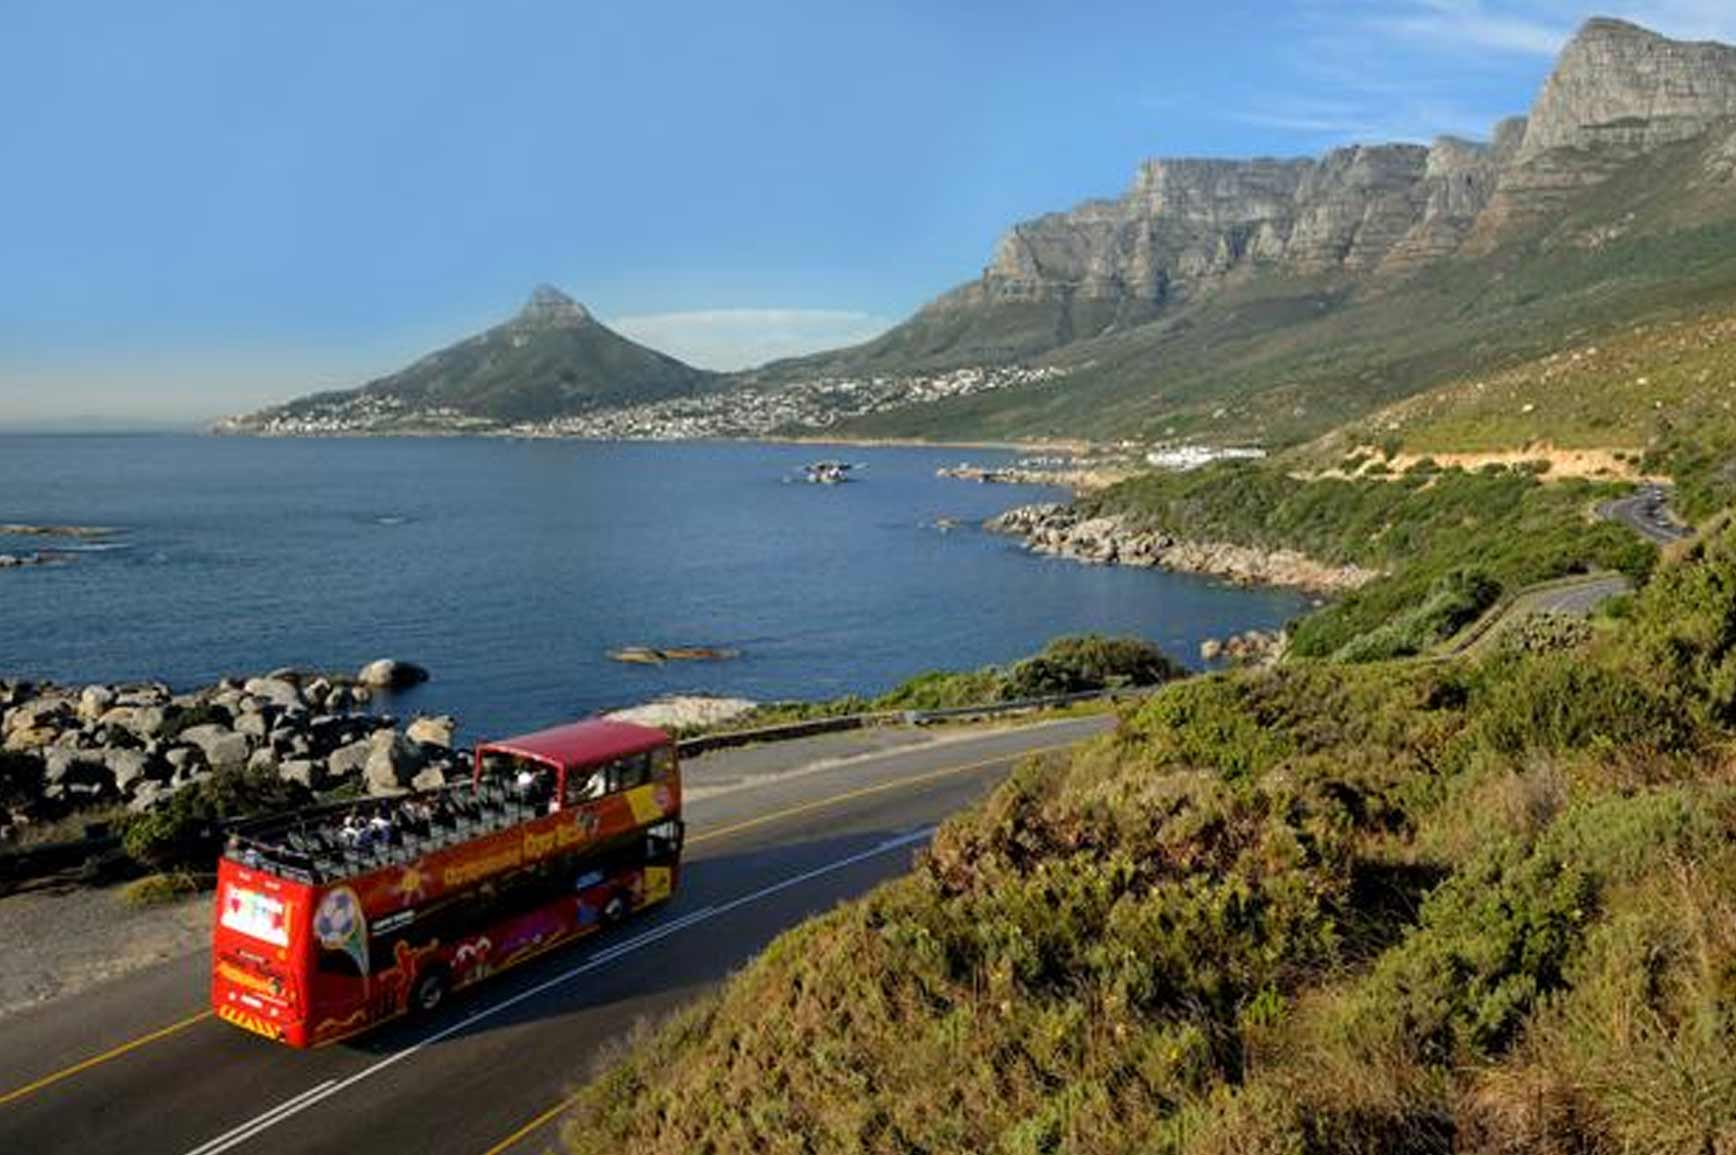 Bus on the way to Camps Bay Beach, Cape Town